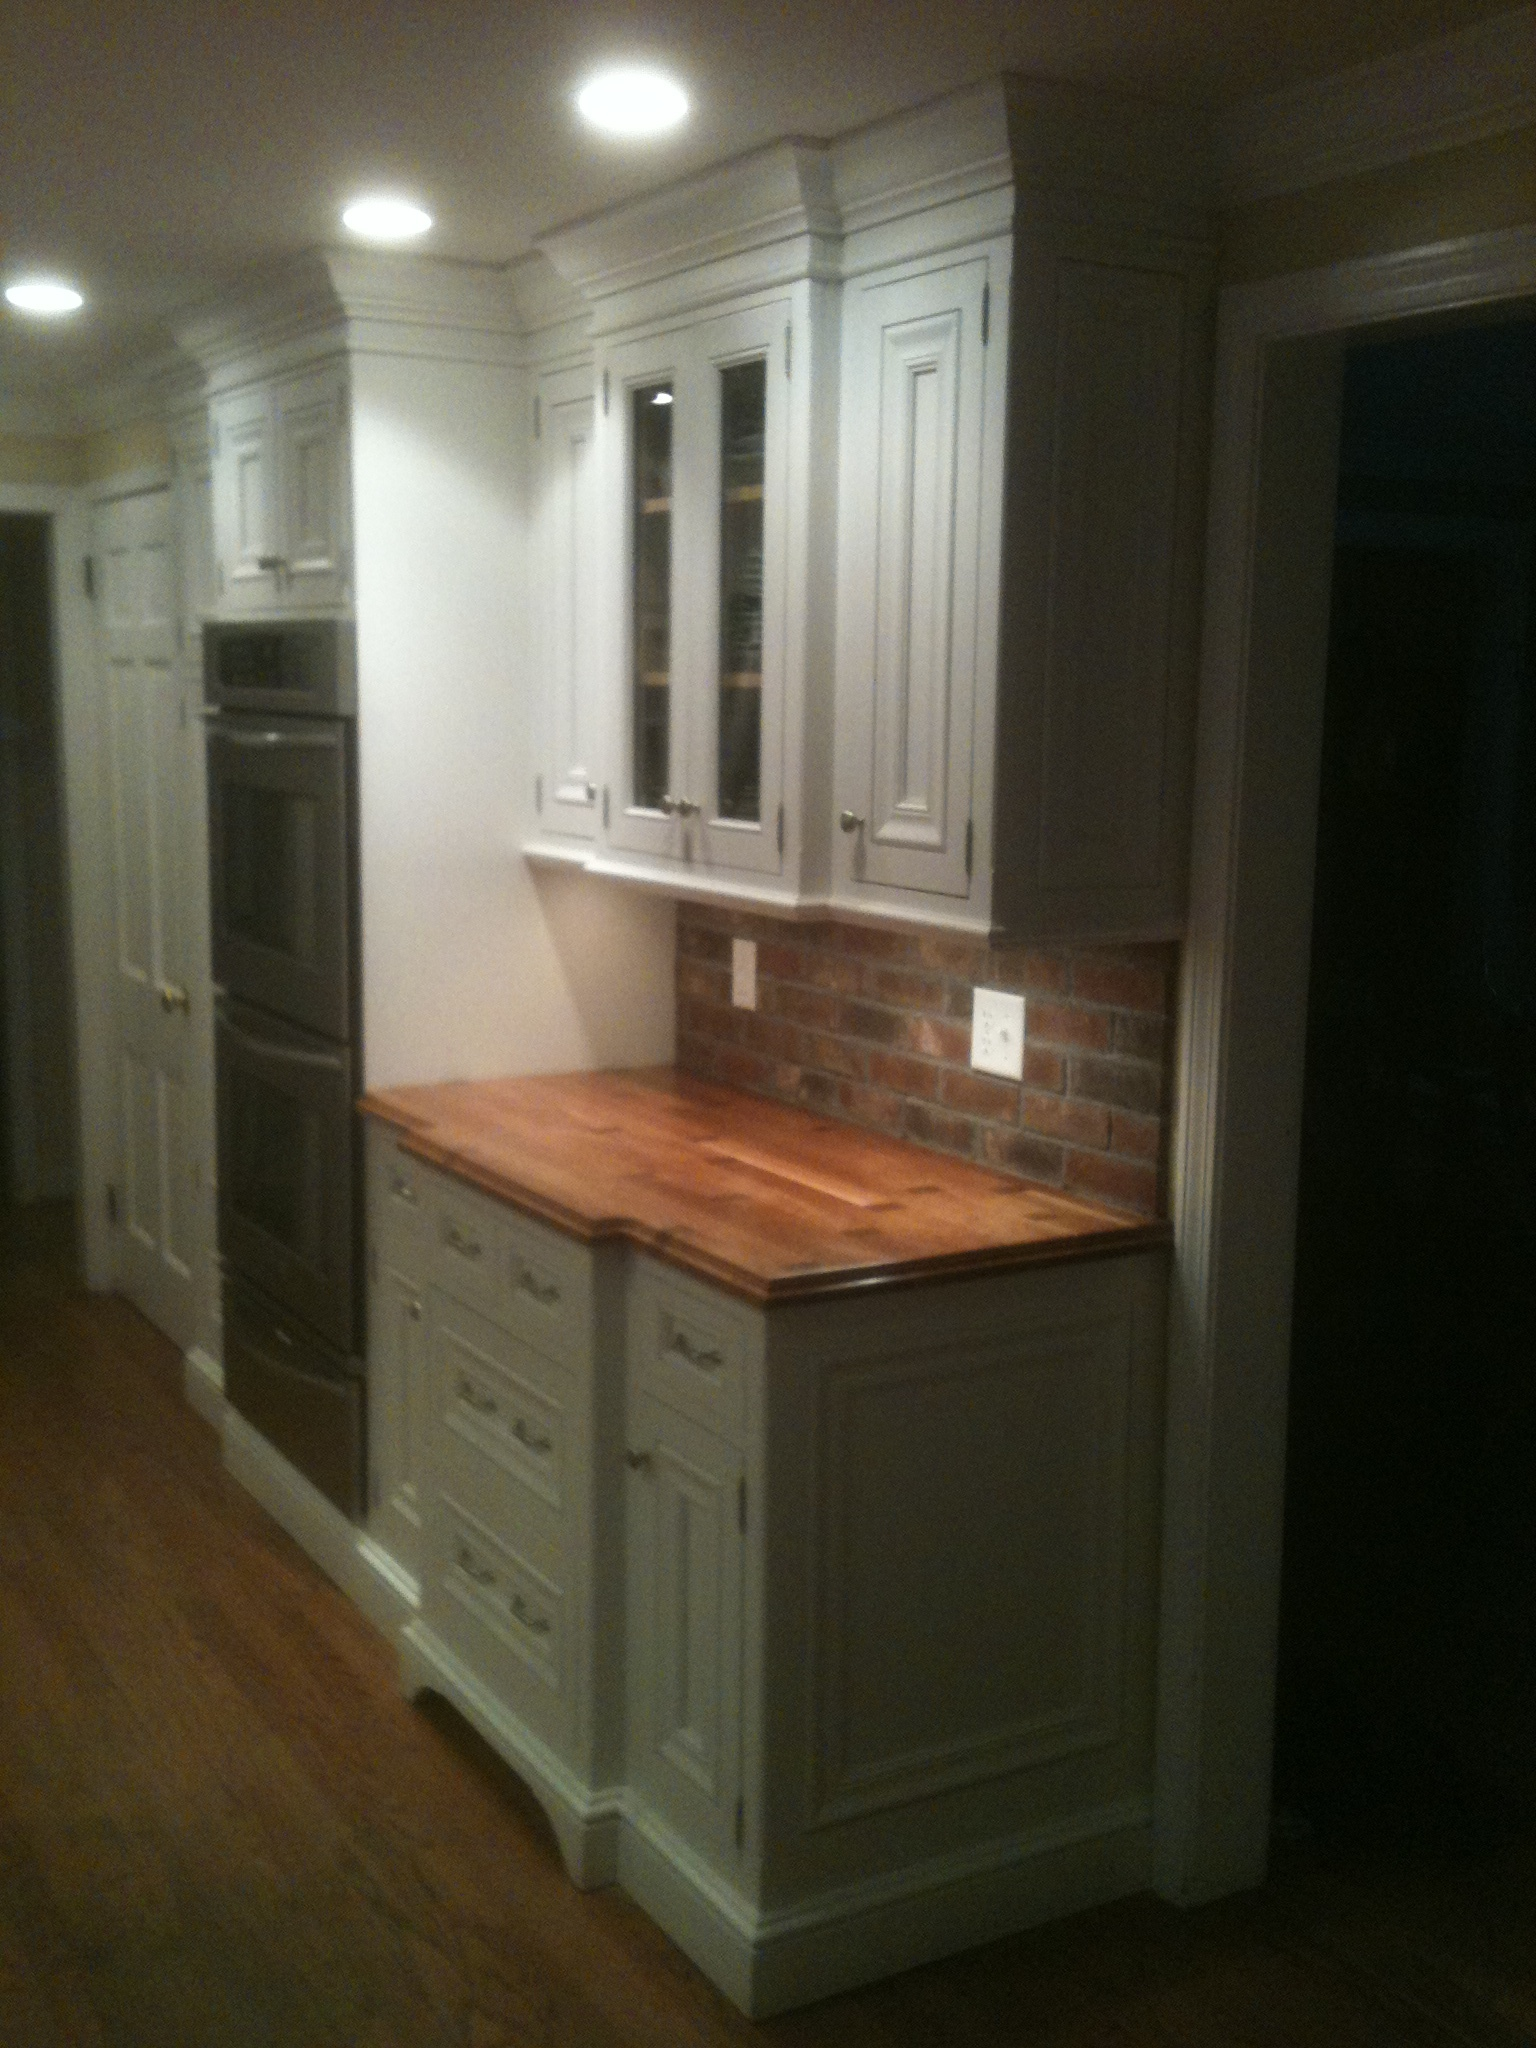 Painted kitchen cabinets with wood countertop